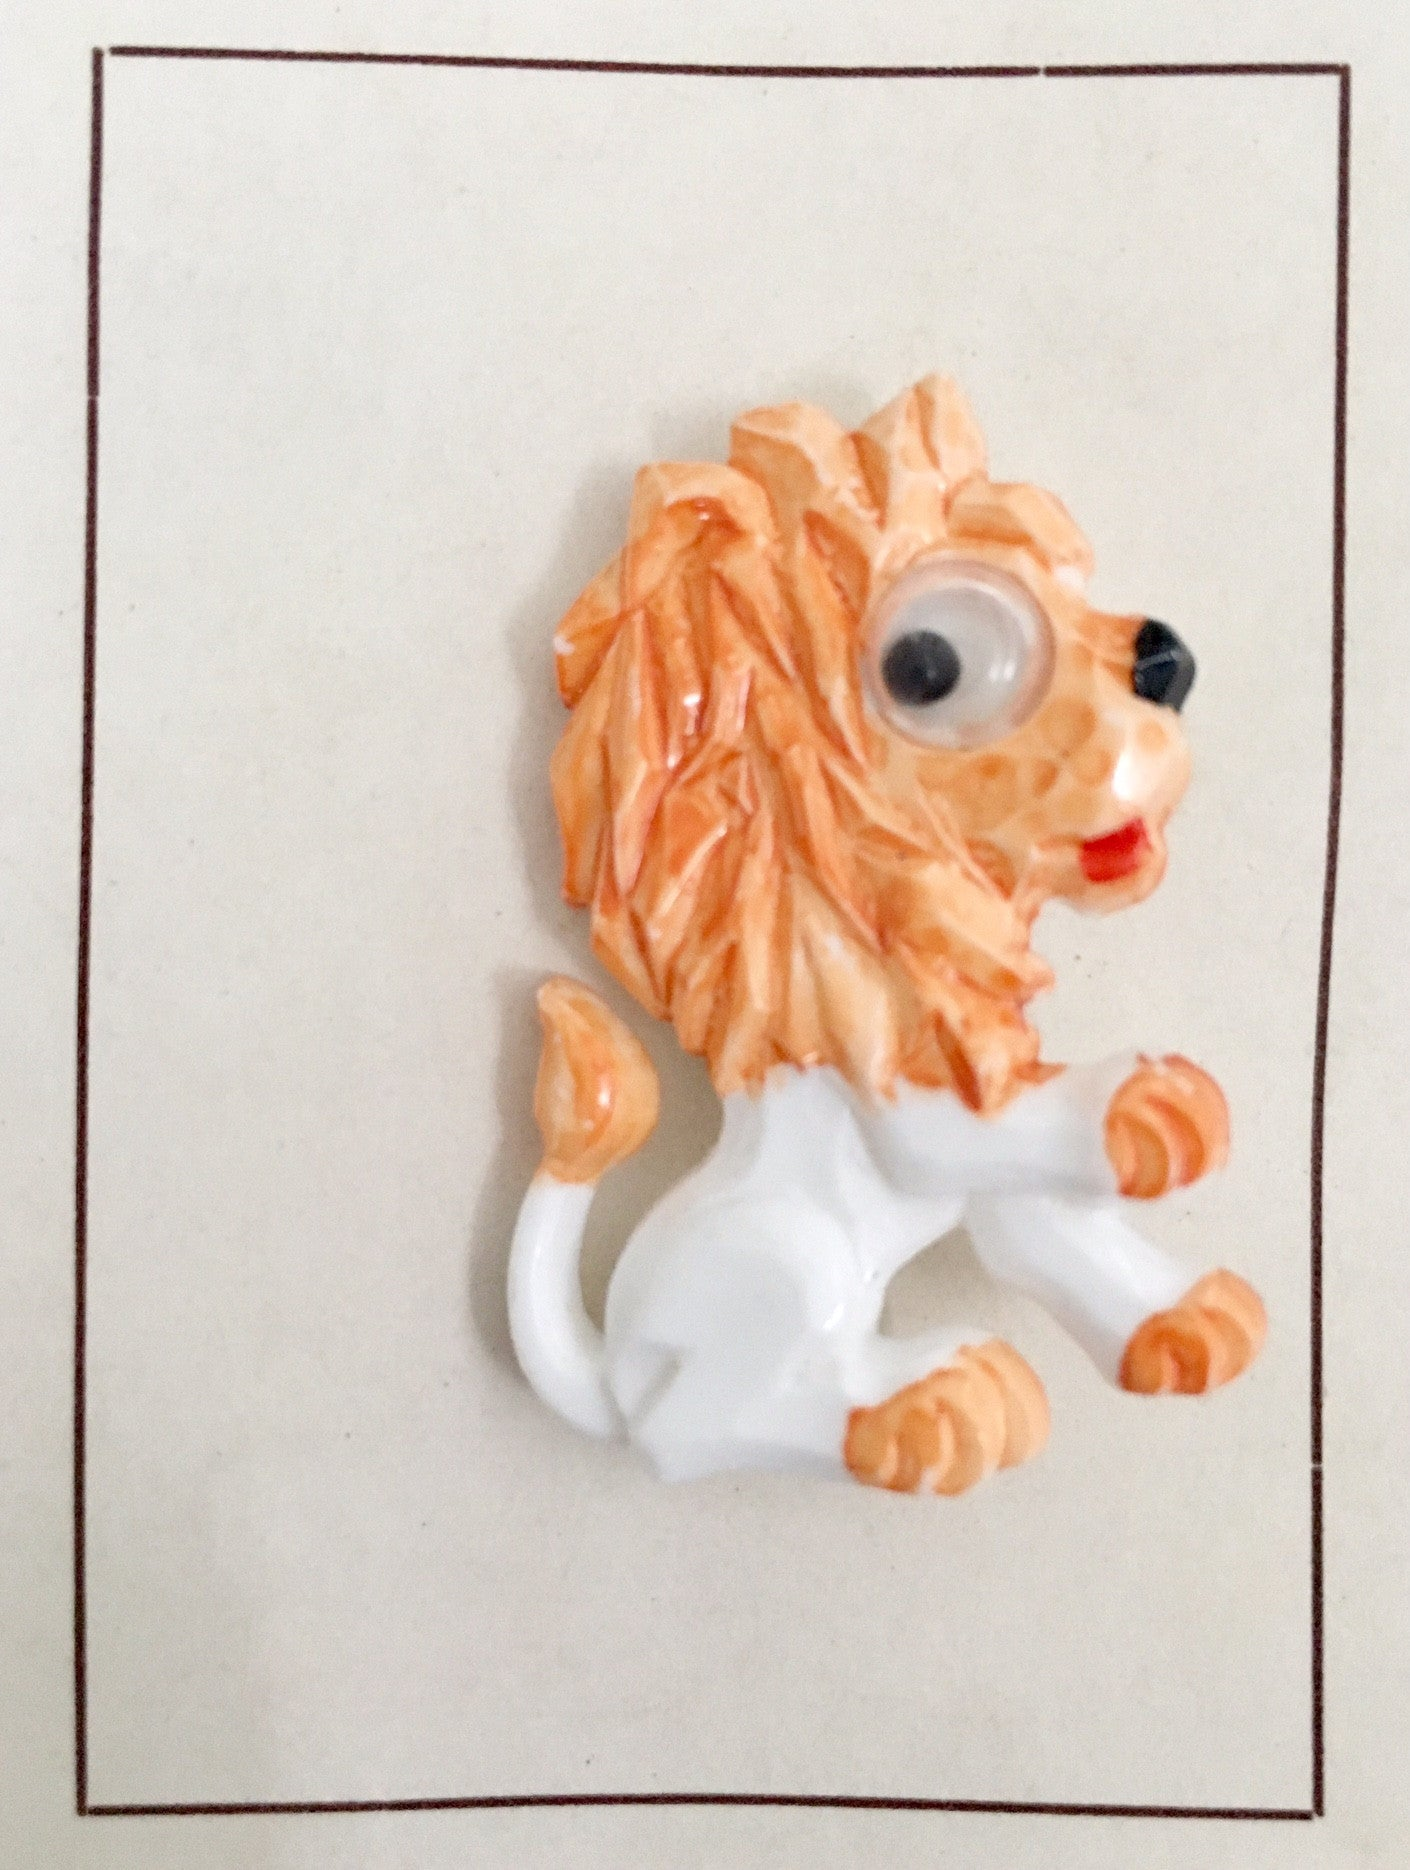 Buy 1960s vintage lion brooch with googly eye on original card at 1960s vintage lion brooch with googly eye on original card accessories of old kristyandbryce Gallery